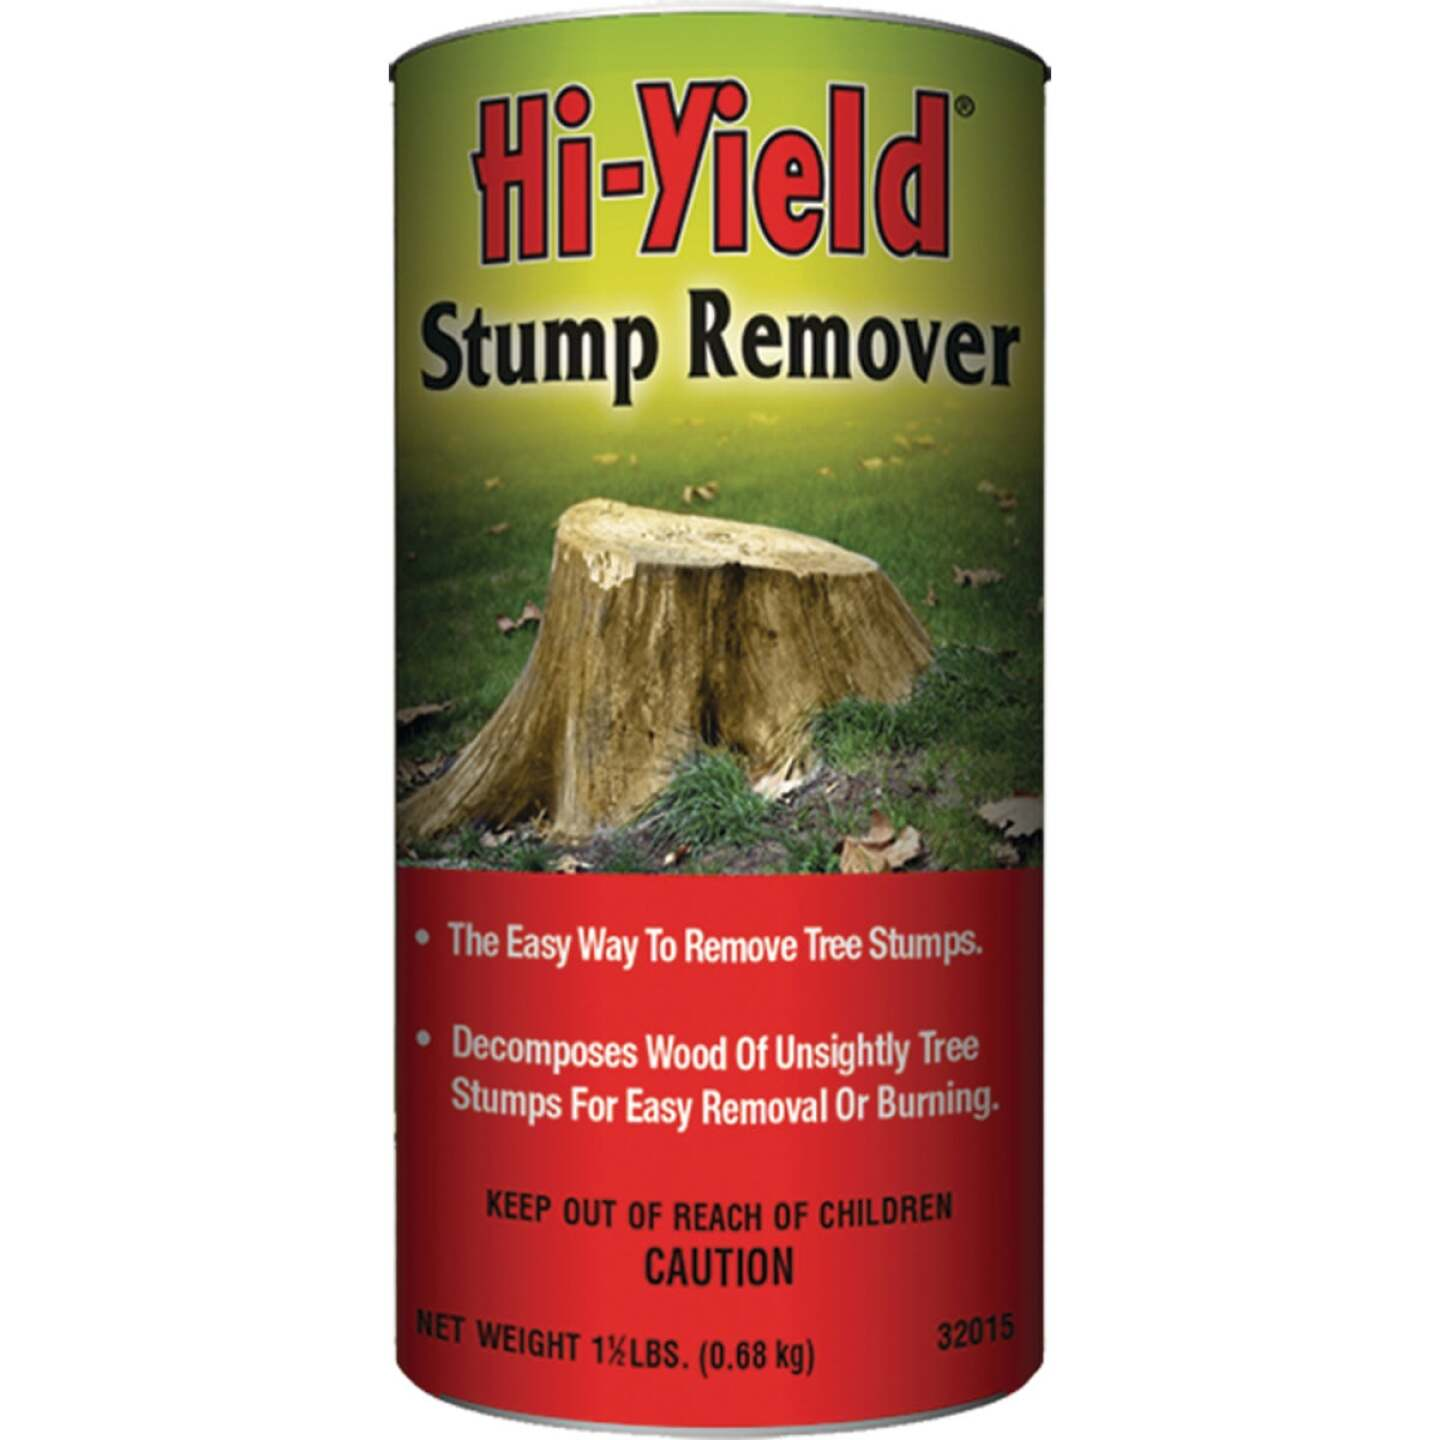 Hi-Yield 1-1/2 Lb. Granular Stump Remover Image 1